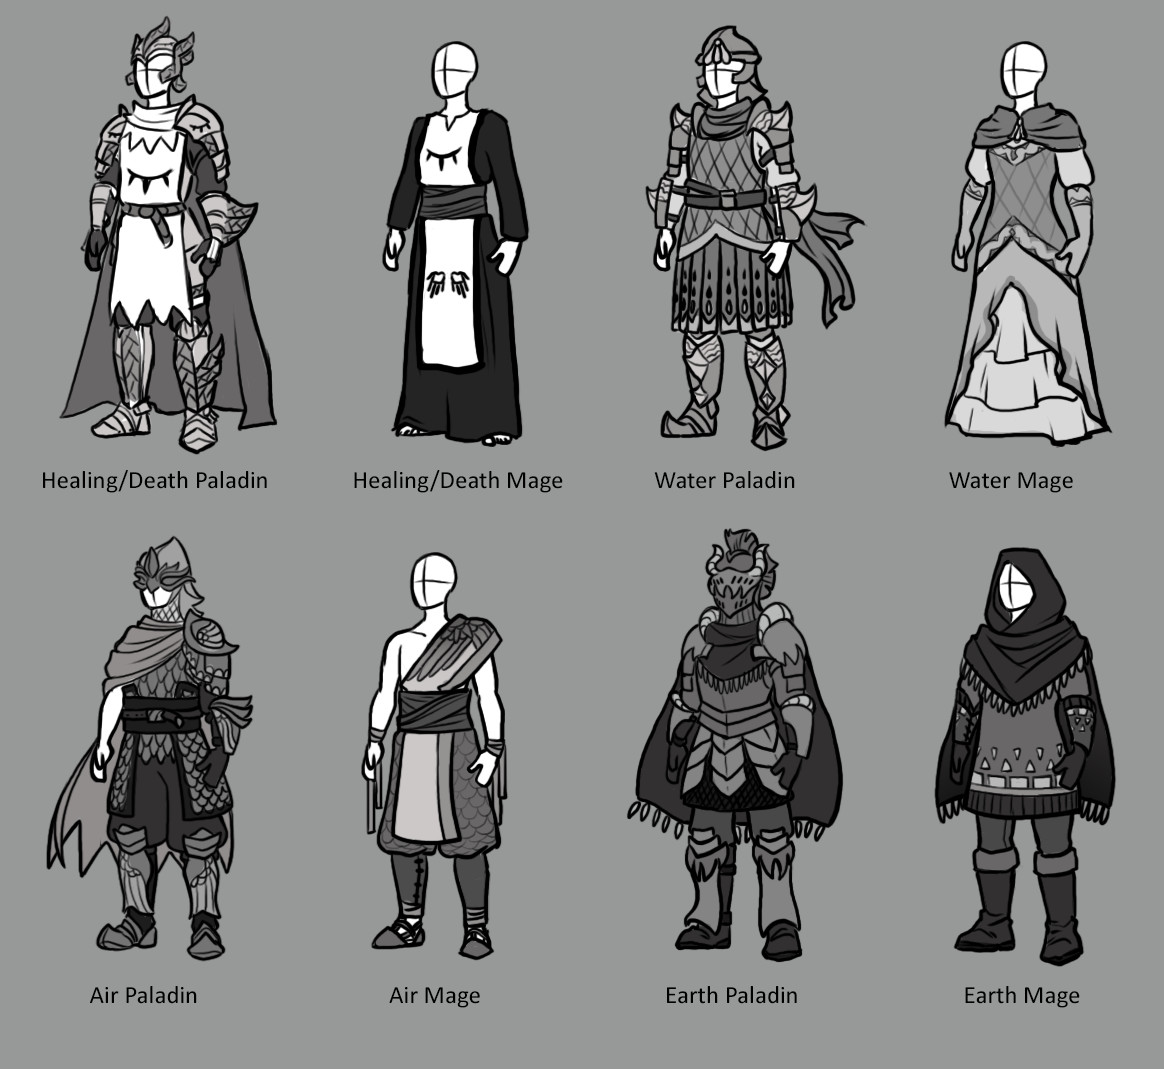 Armor and uniforms of the mage academies.